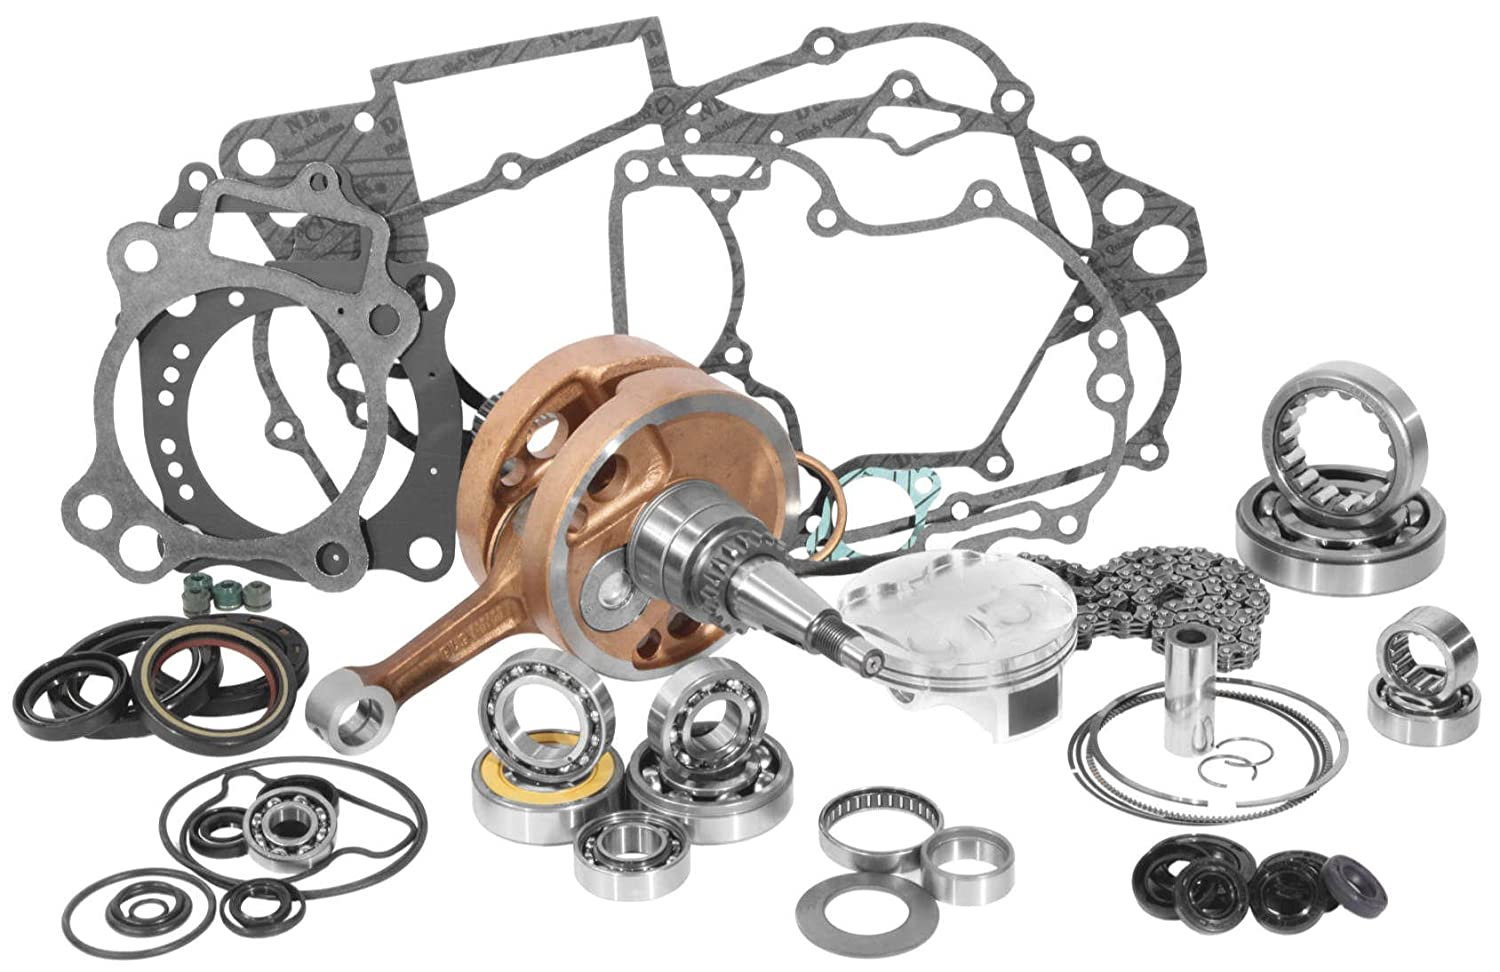 Wrench Rabbit WR101-052 Complete Engine Rebuild Kit In A Box